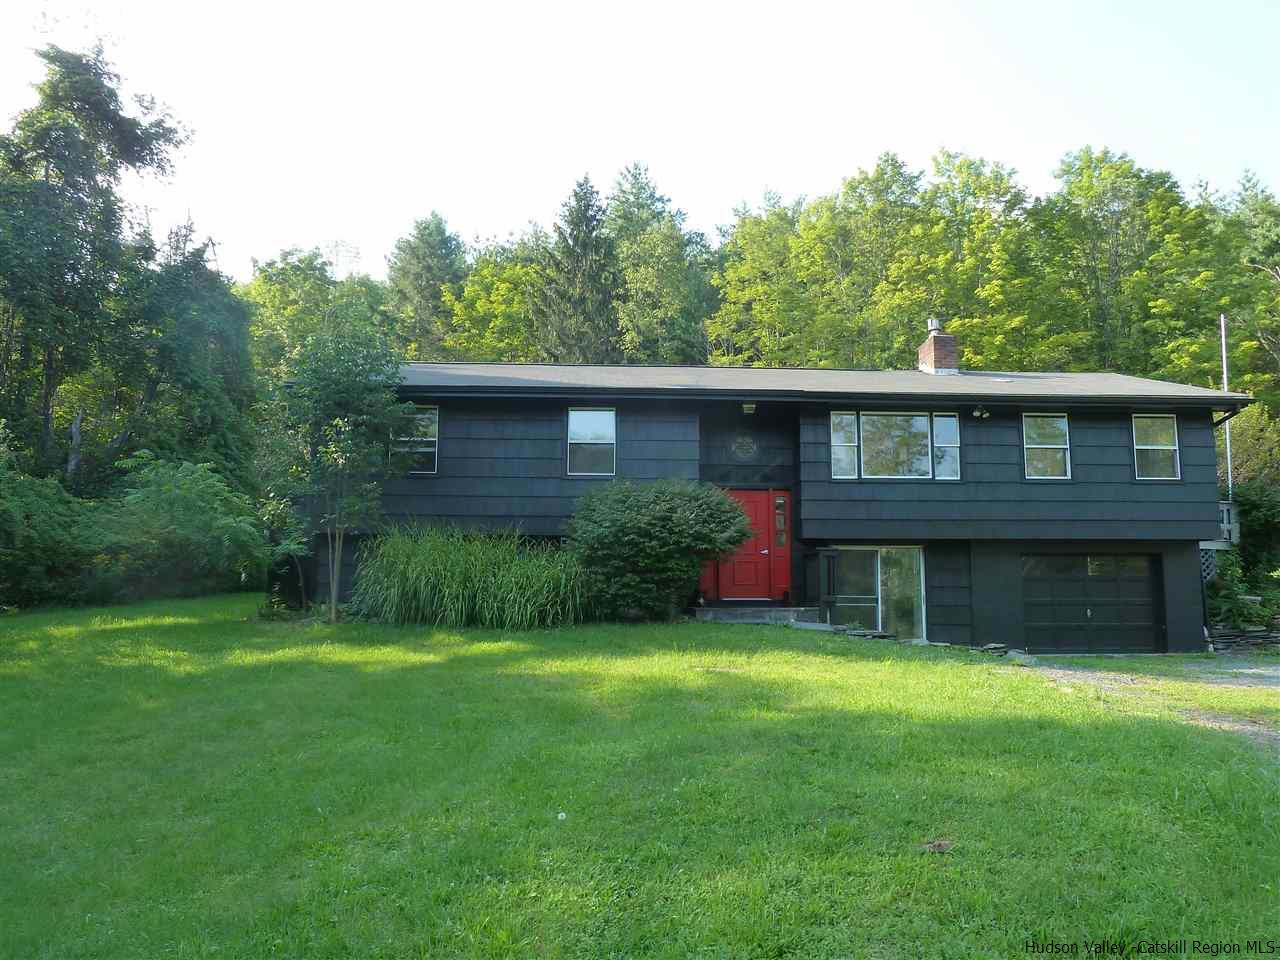 Additional photo for property listing at 4572 Route 212 4572 Route 212 Willow, New York 12495 United States